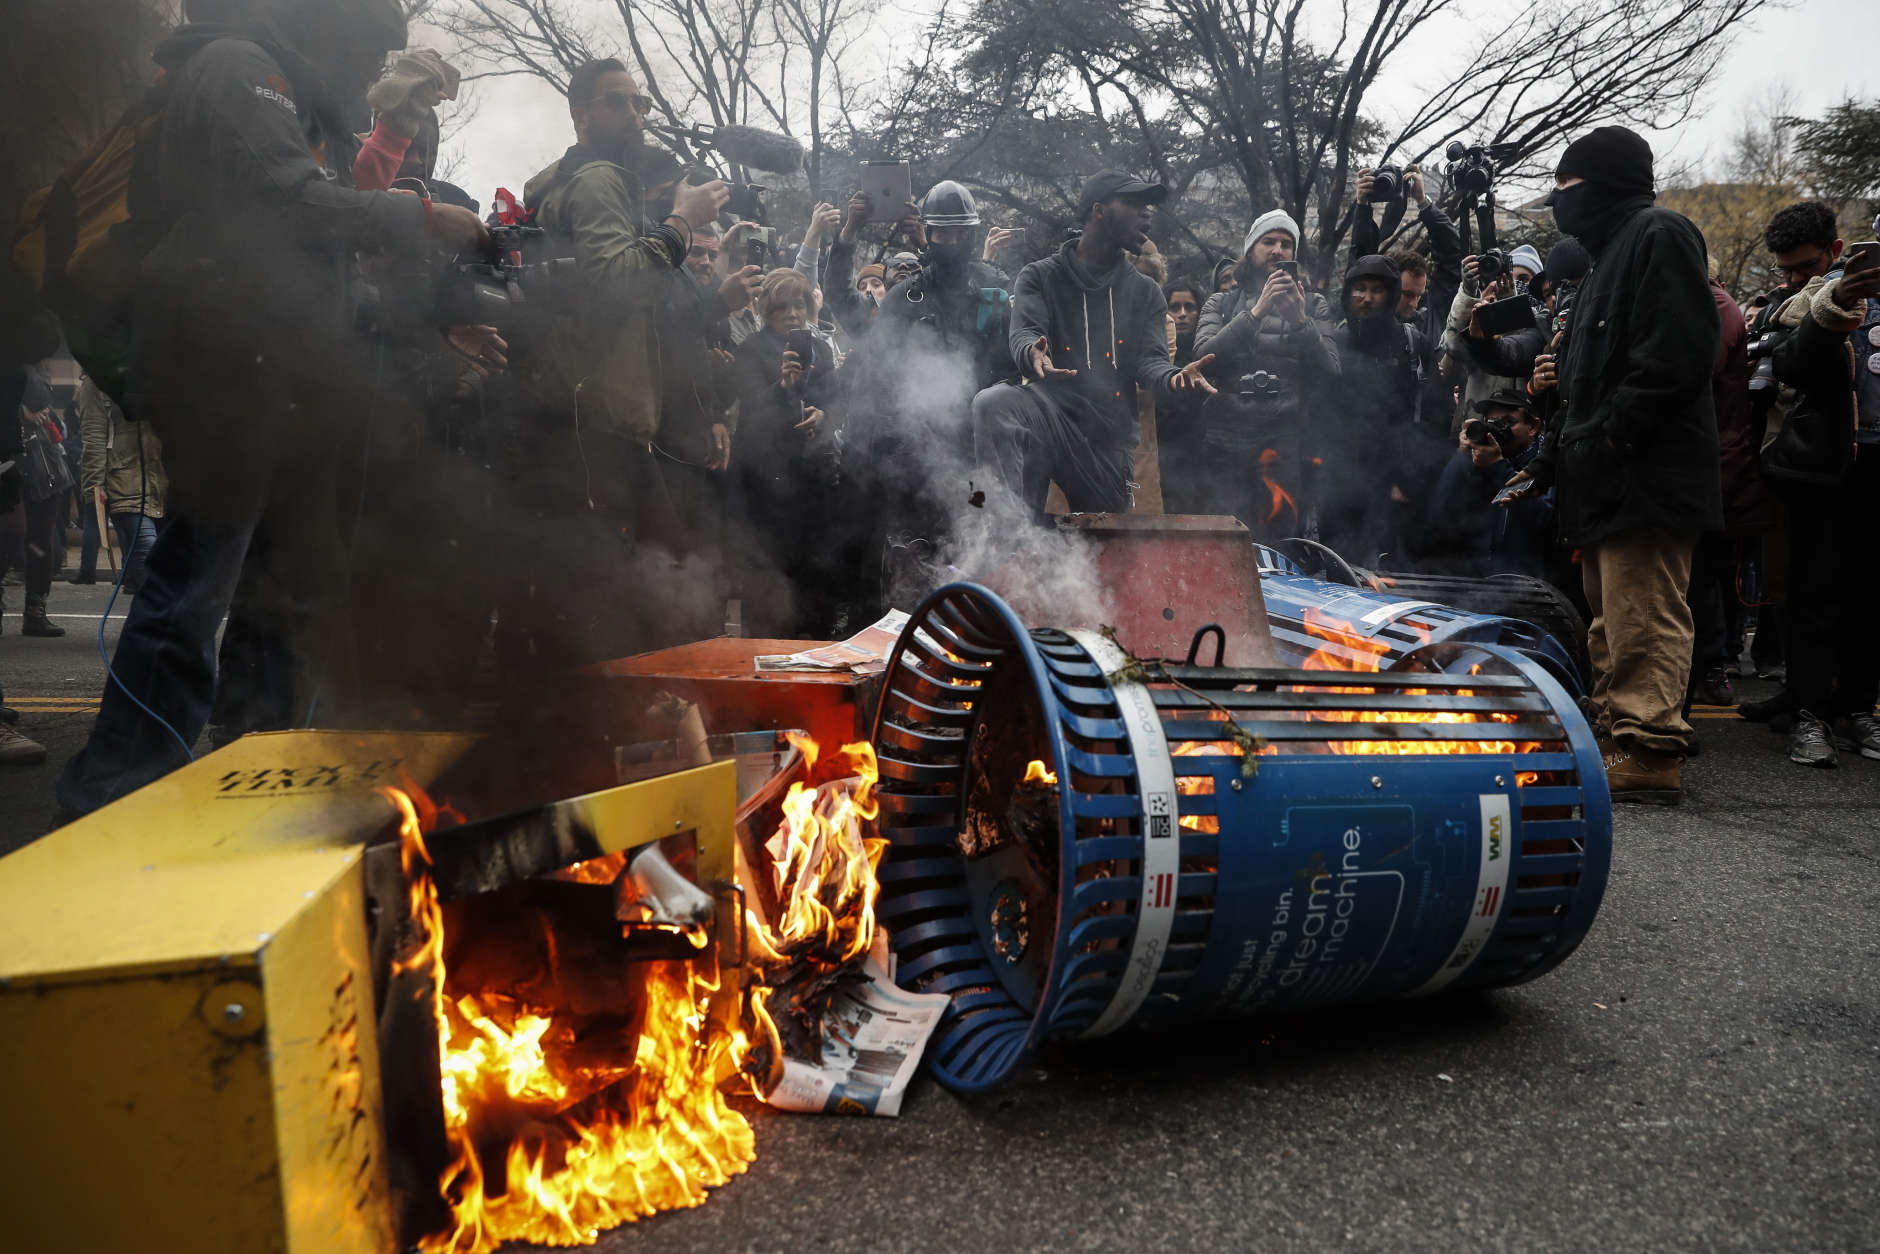 A Washington resident, center right, demands peace as he guards a pile of burning newspaper machines to prevent protestors from feeding the flames during a demonstration after the inauguration of President Donald Trump, Friday, Jan. 20, 2017, in Washington. (AP Photo/John Minchillo)